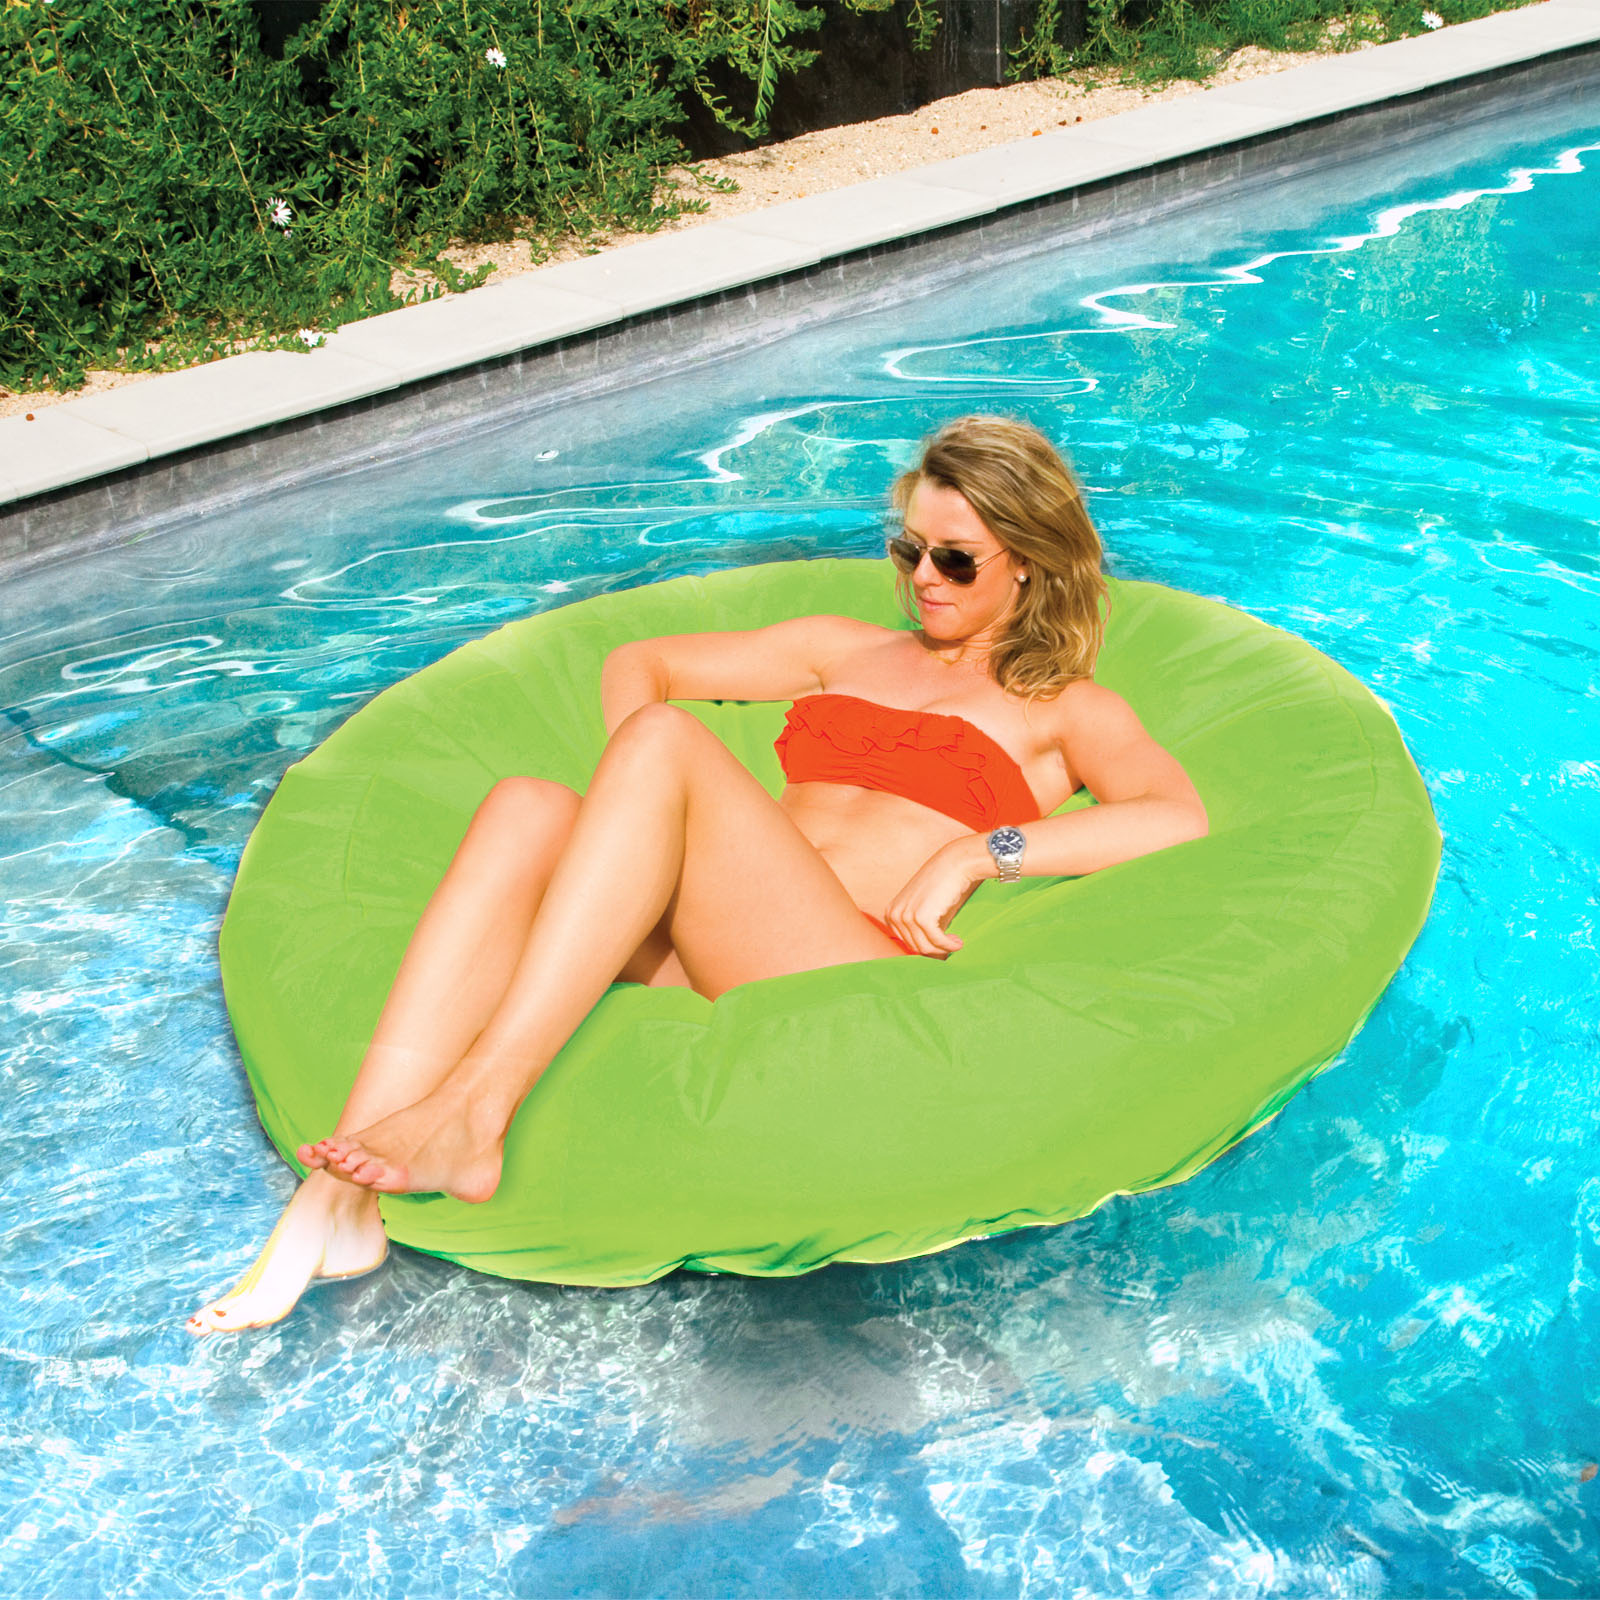 Solstice SunSoft Lime Fabric Island Pool Float Pool Supplies Canada